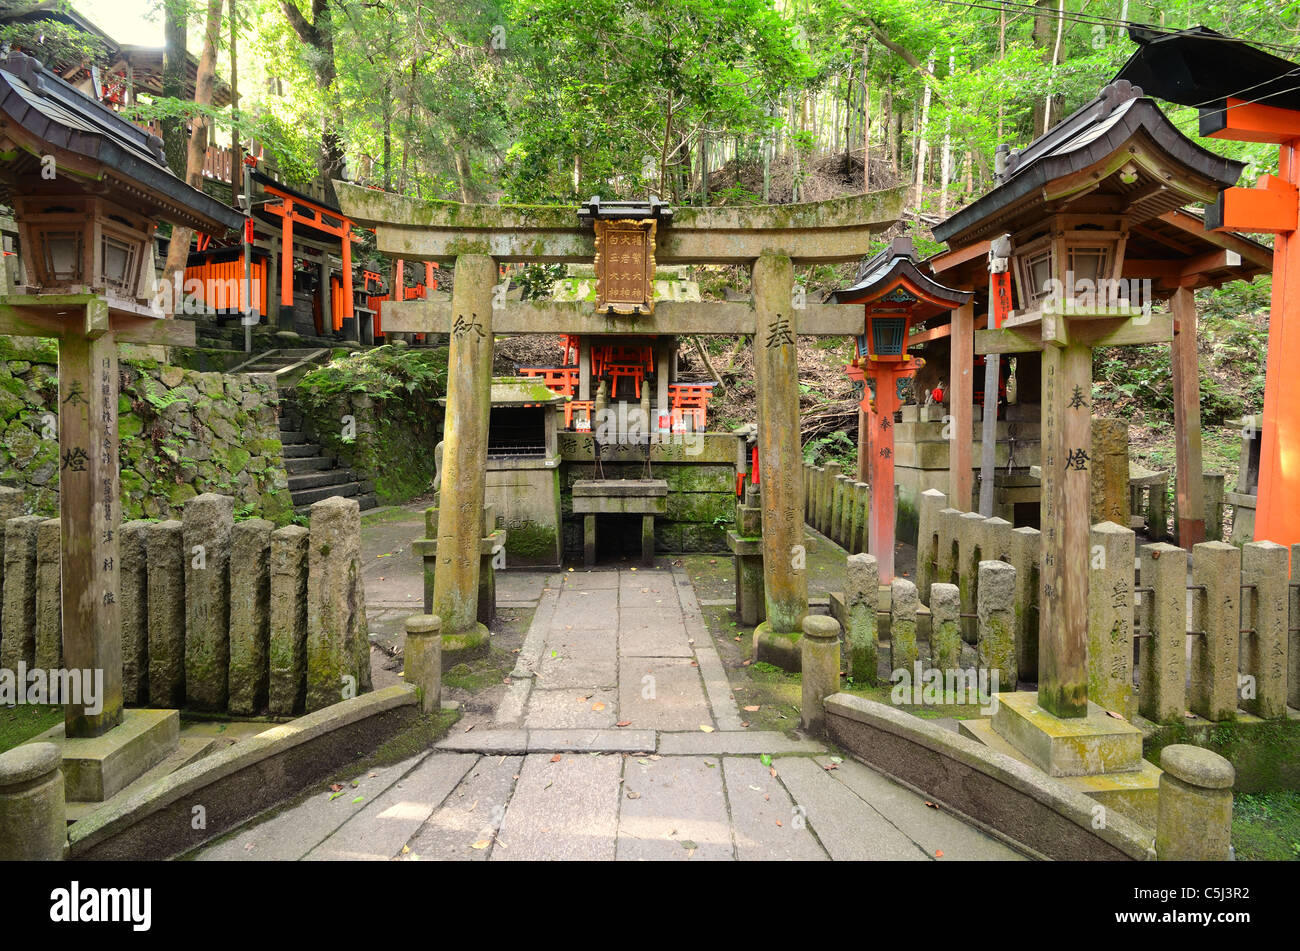 Small sub-shrine at Fushimi Inari Shrine in Kyoto, Japan. Stock Photo